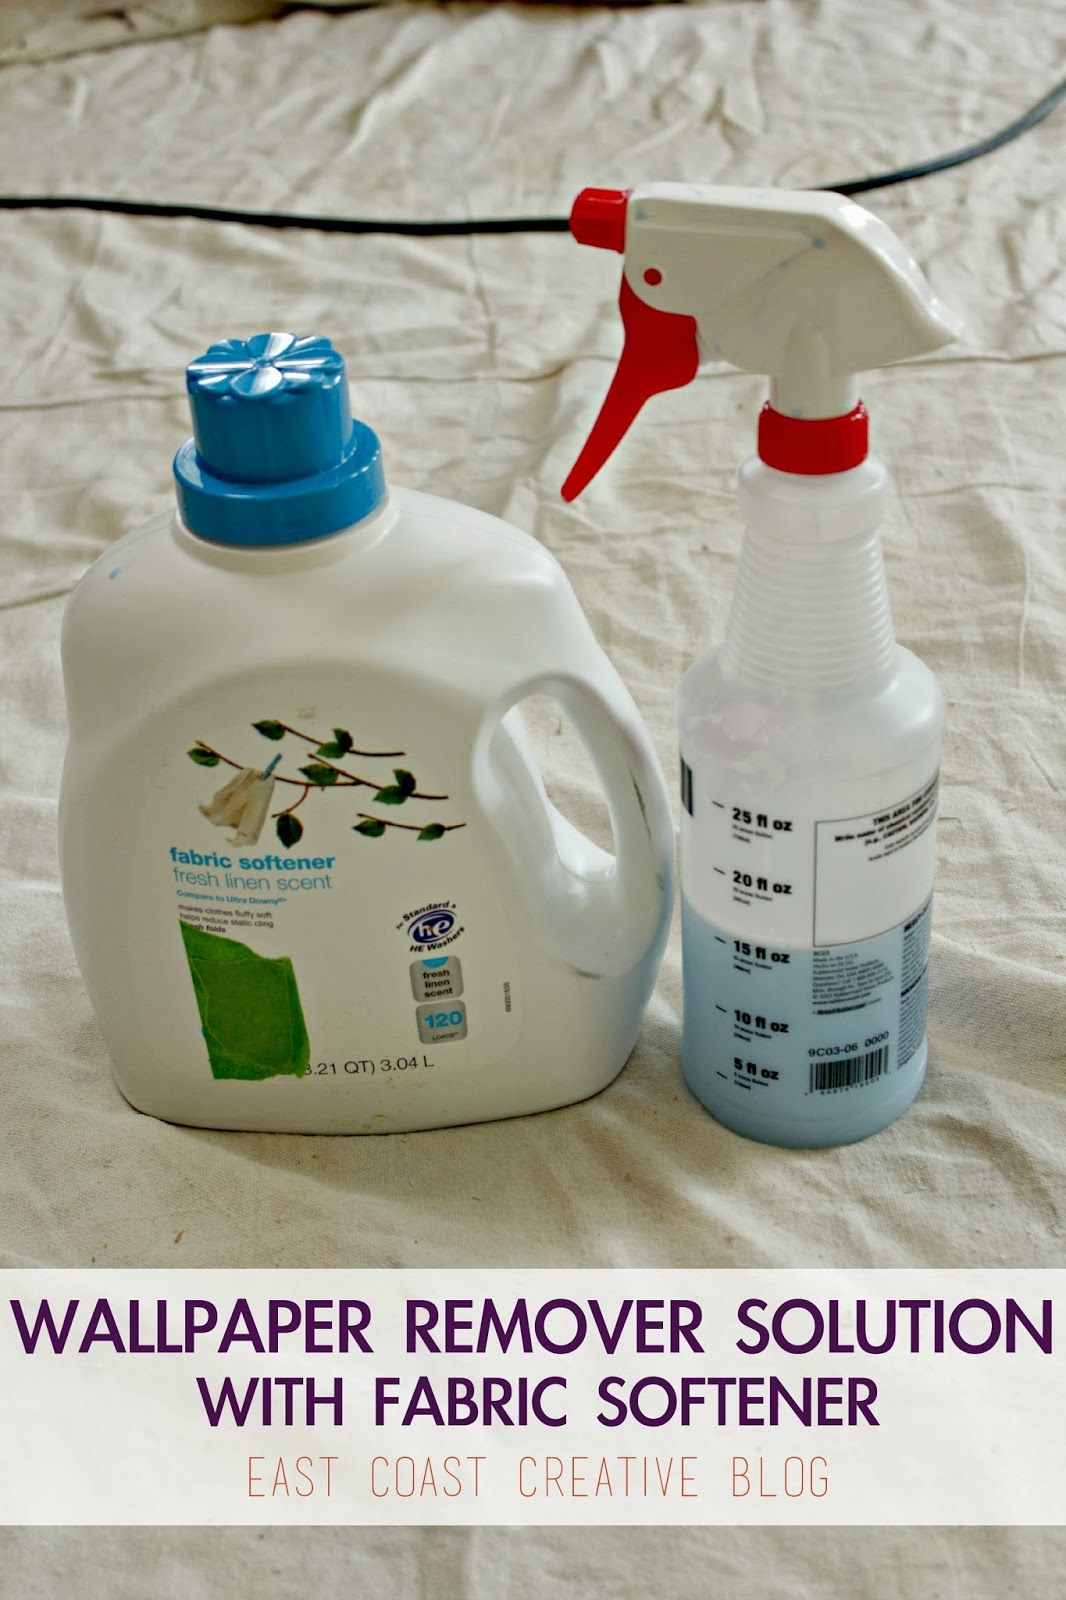 How To Remove Wallpaper The Easy Way Cleaning Cleaning Hacks Removable Wallpaper